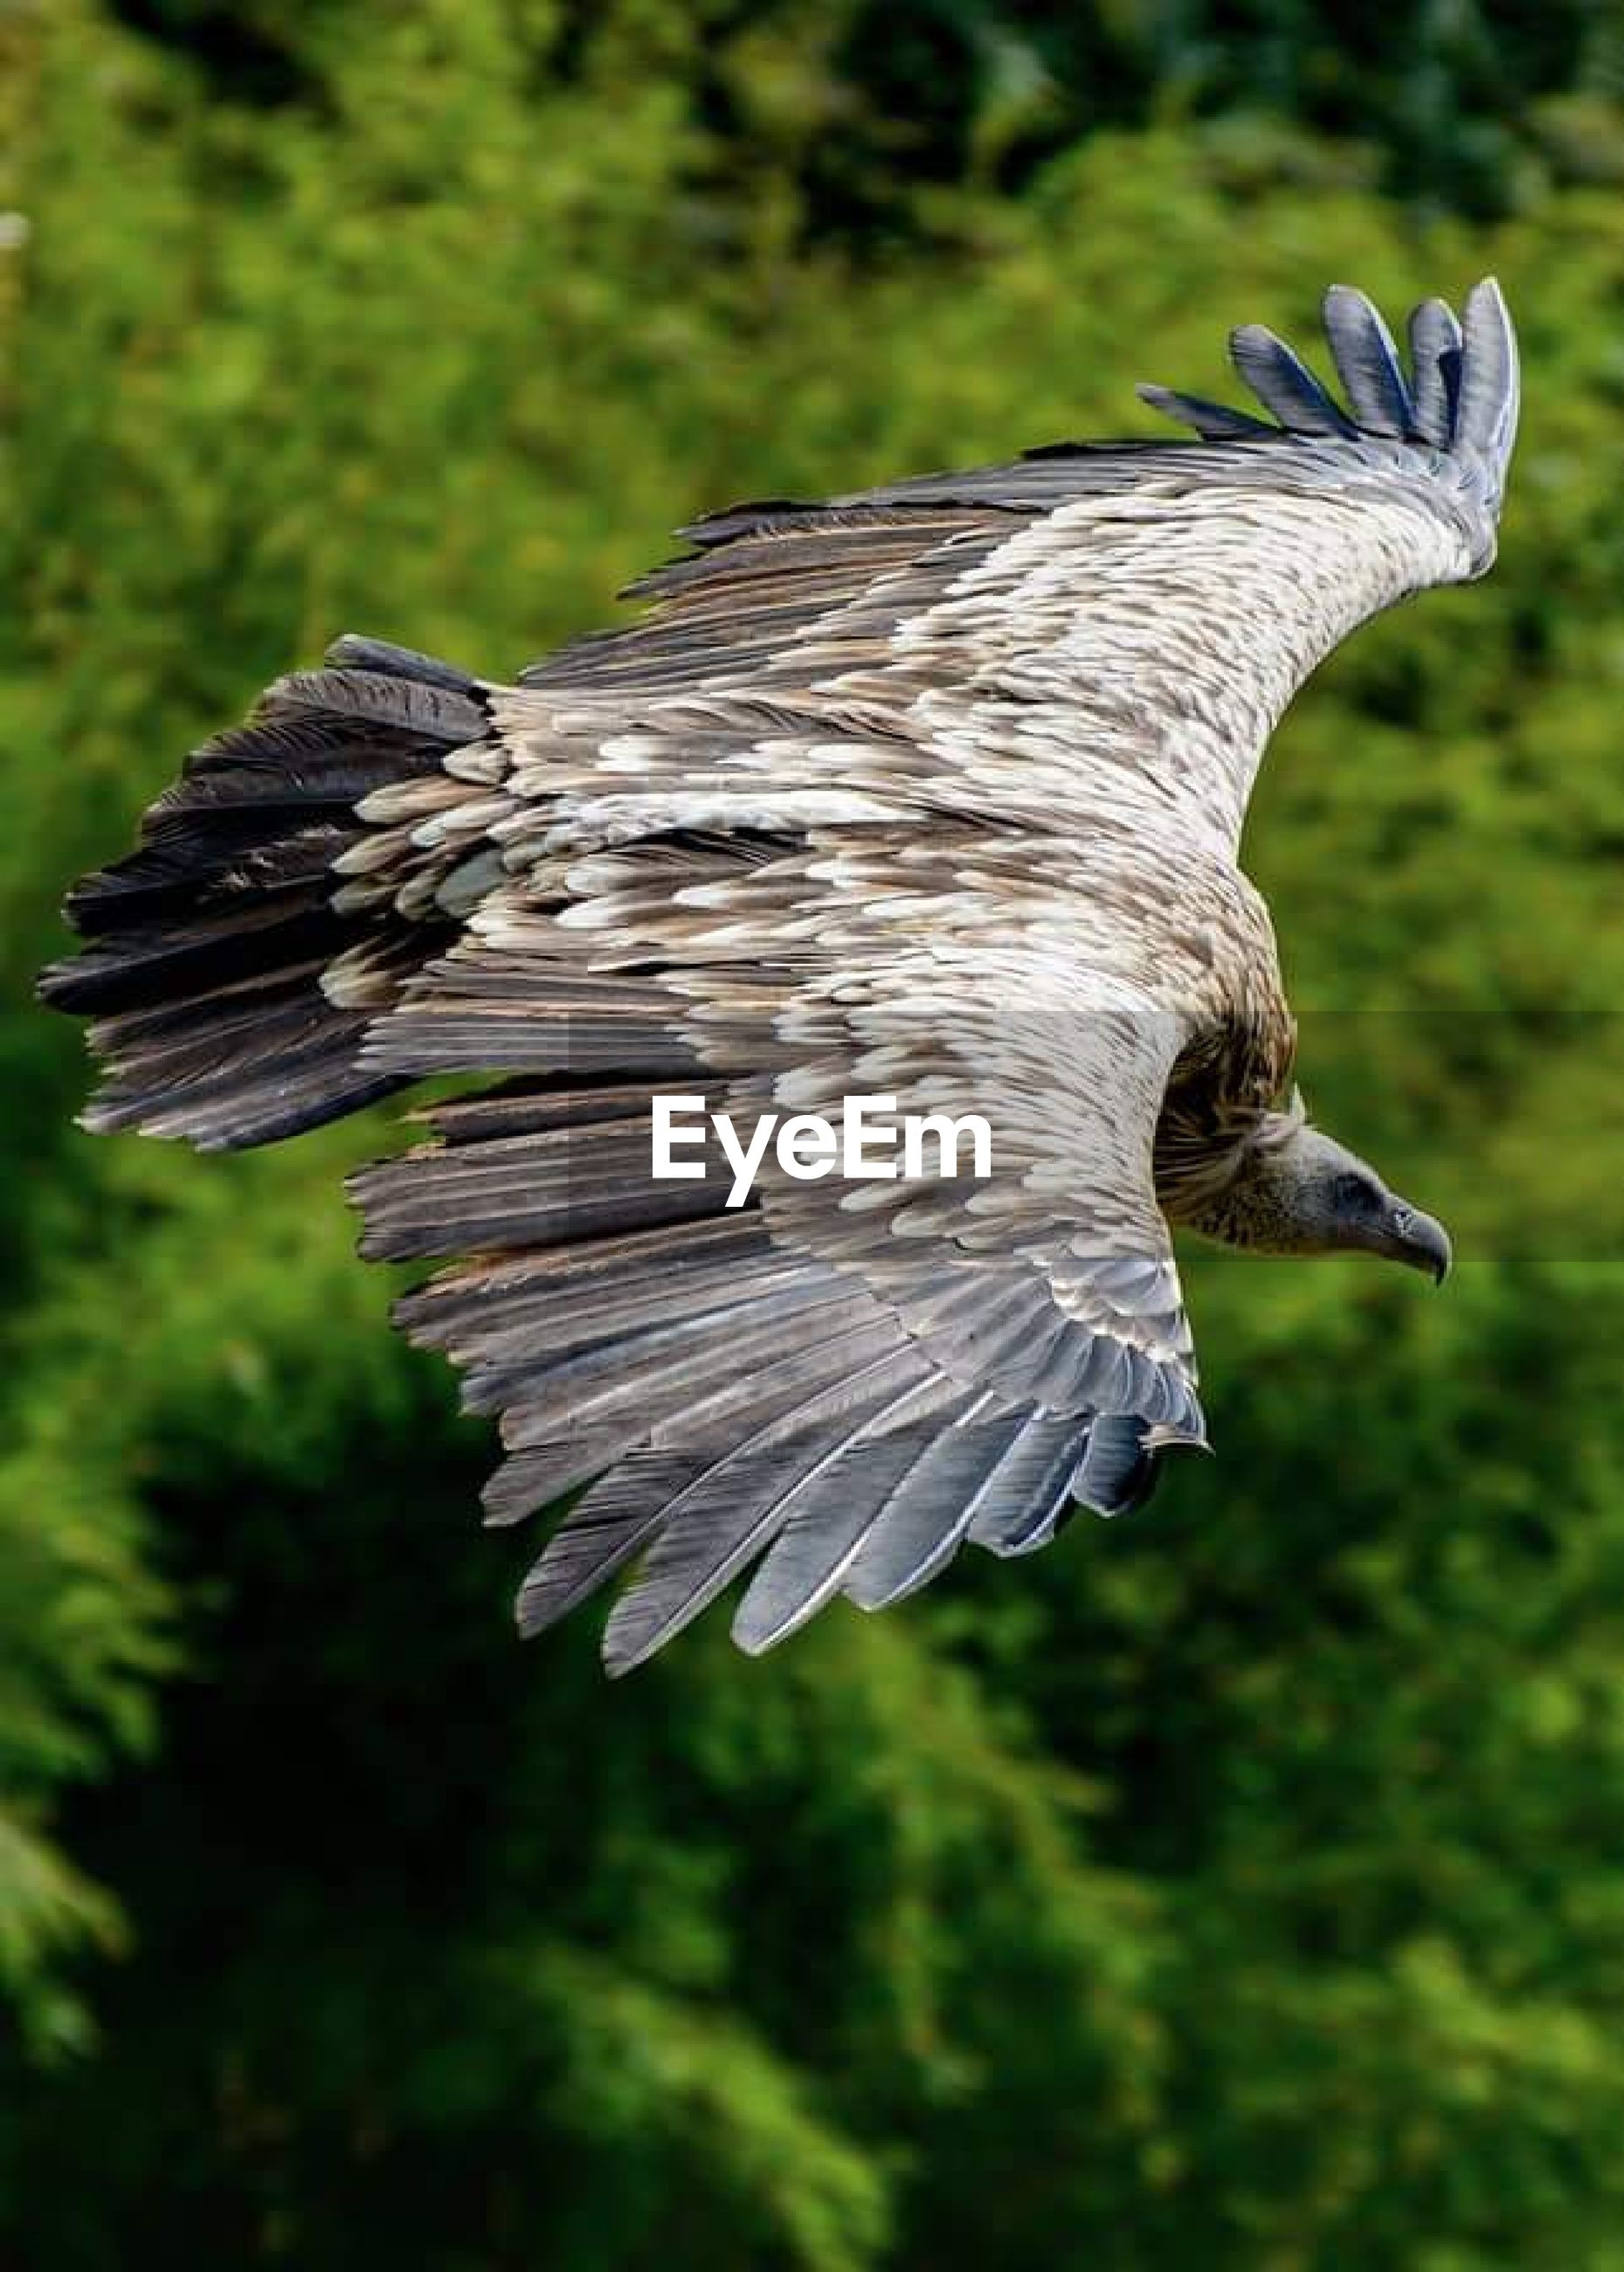 Close-up of eagle flying